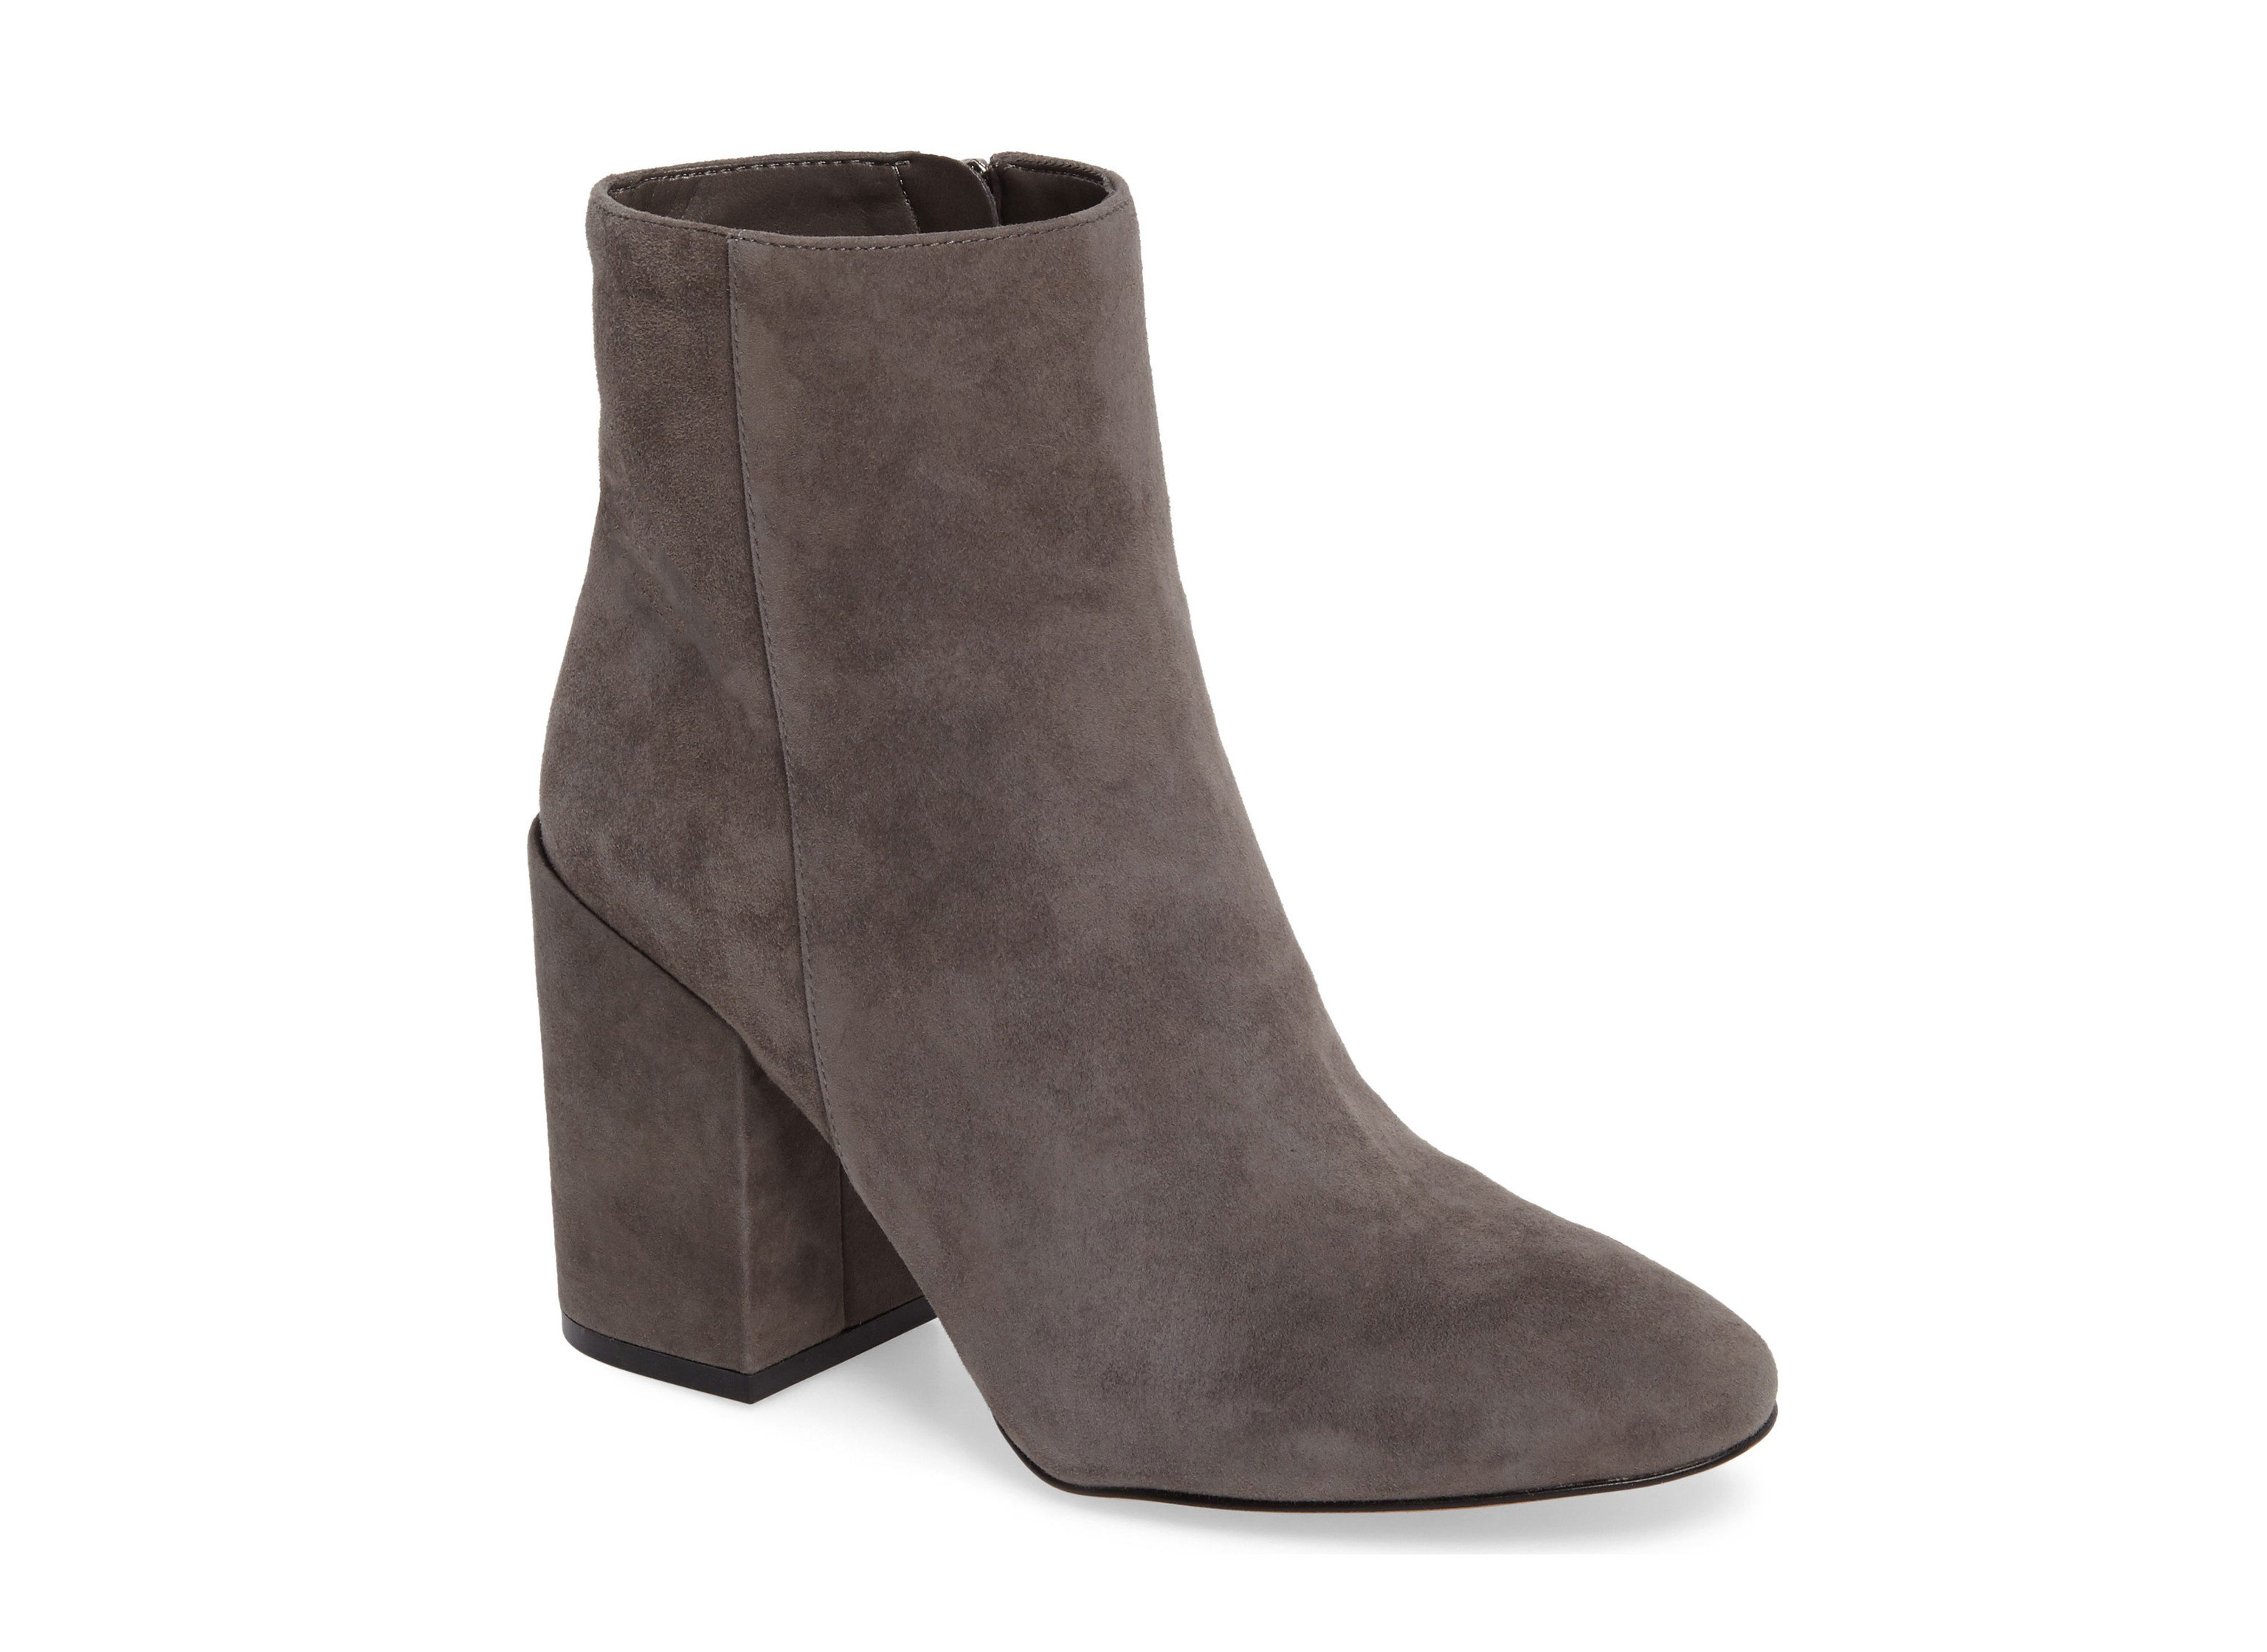 Celebs Style + Design Travel Shop clothing footwear boot suede brown leather shoe high heeled footwear product design